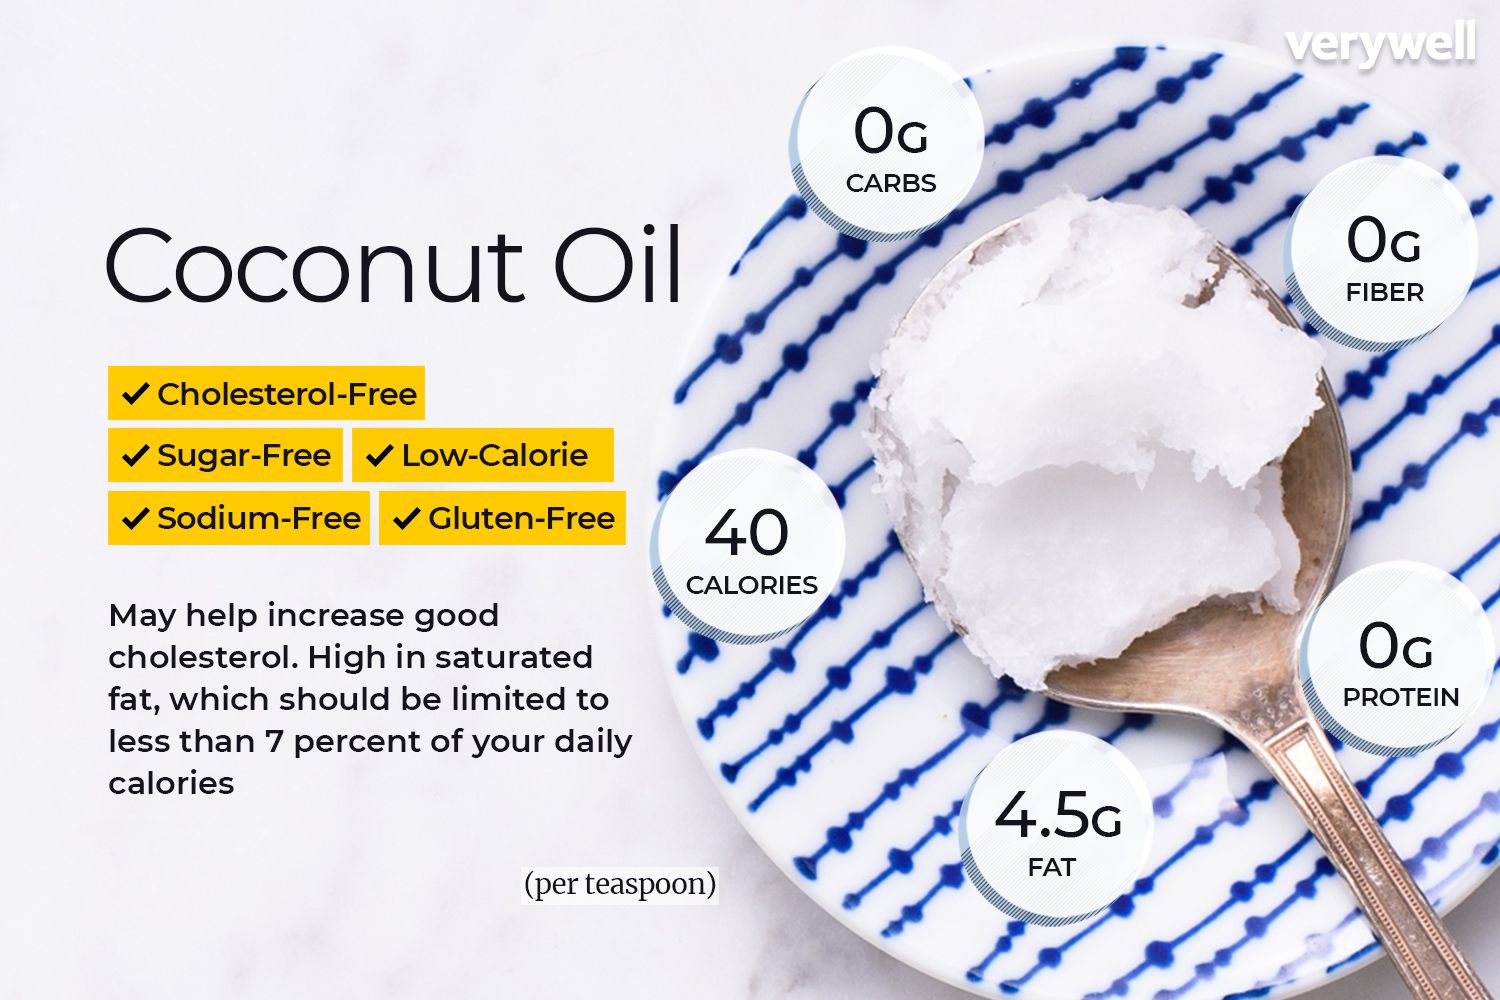 Coconut Oil Nutrition: Calories and Health Benefits